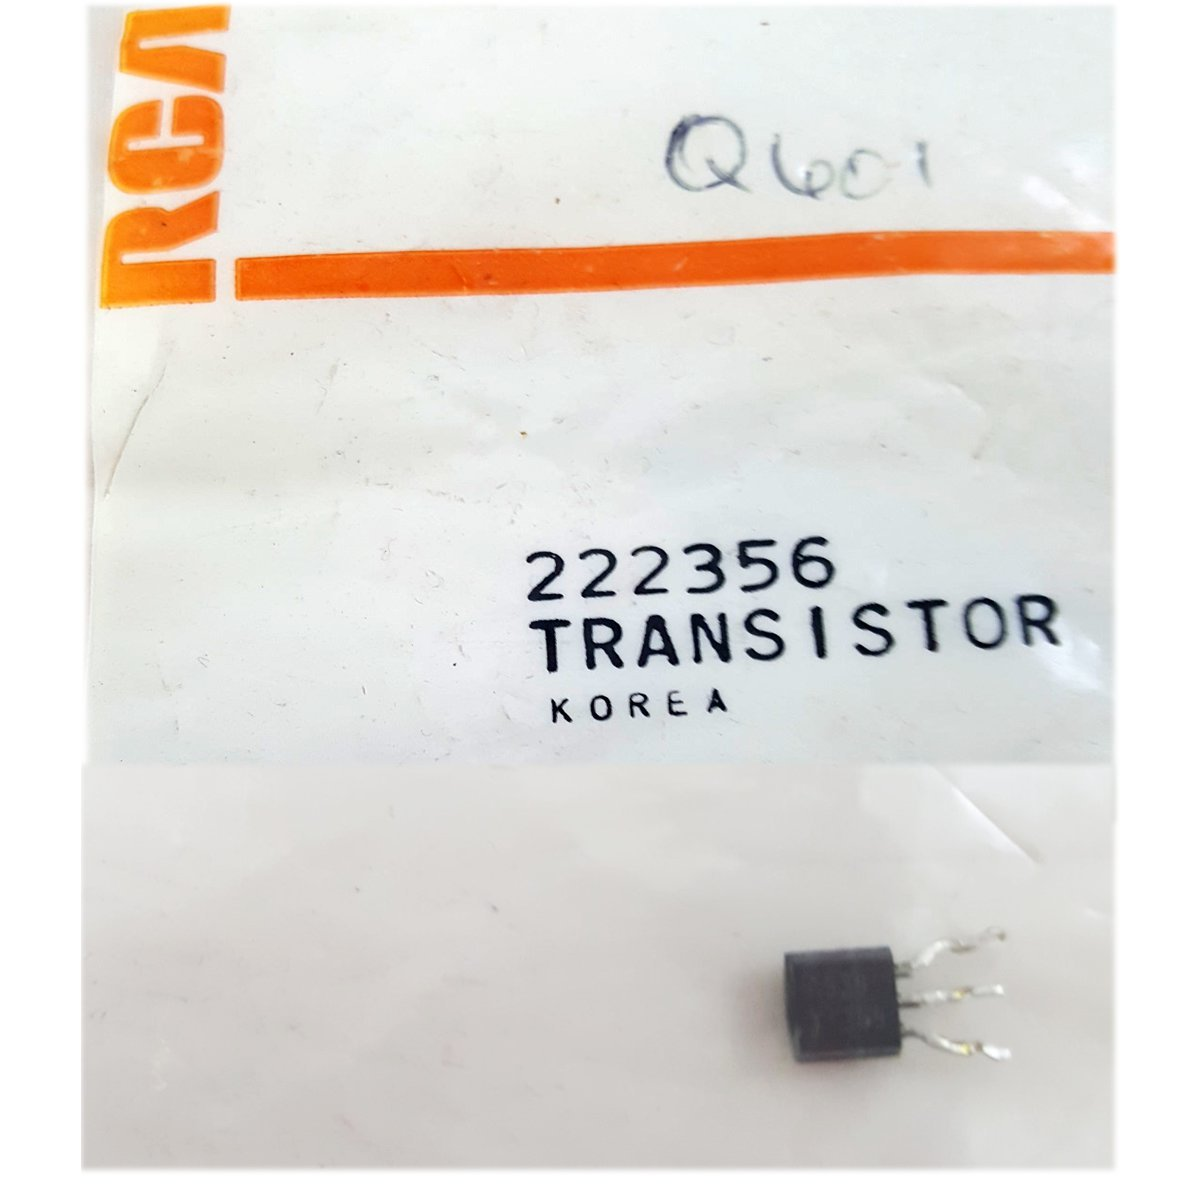 RCA VCR Replacement Transistor Part No. 222356